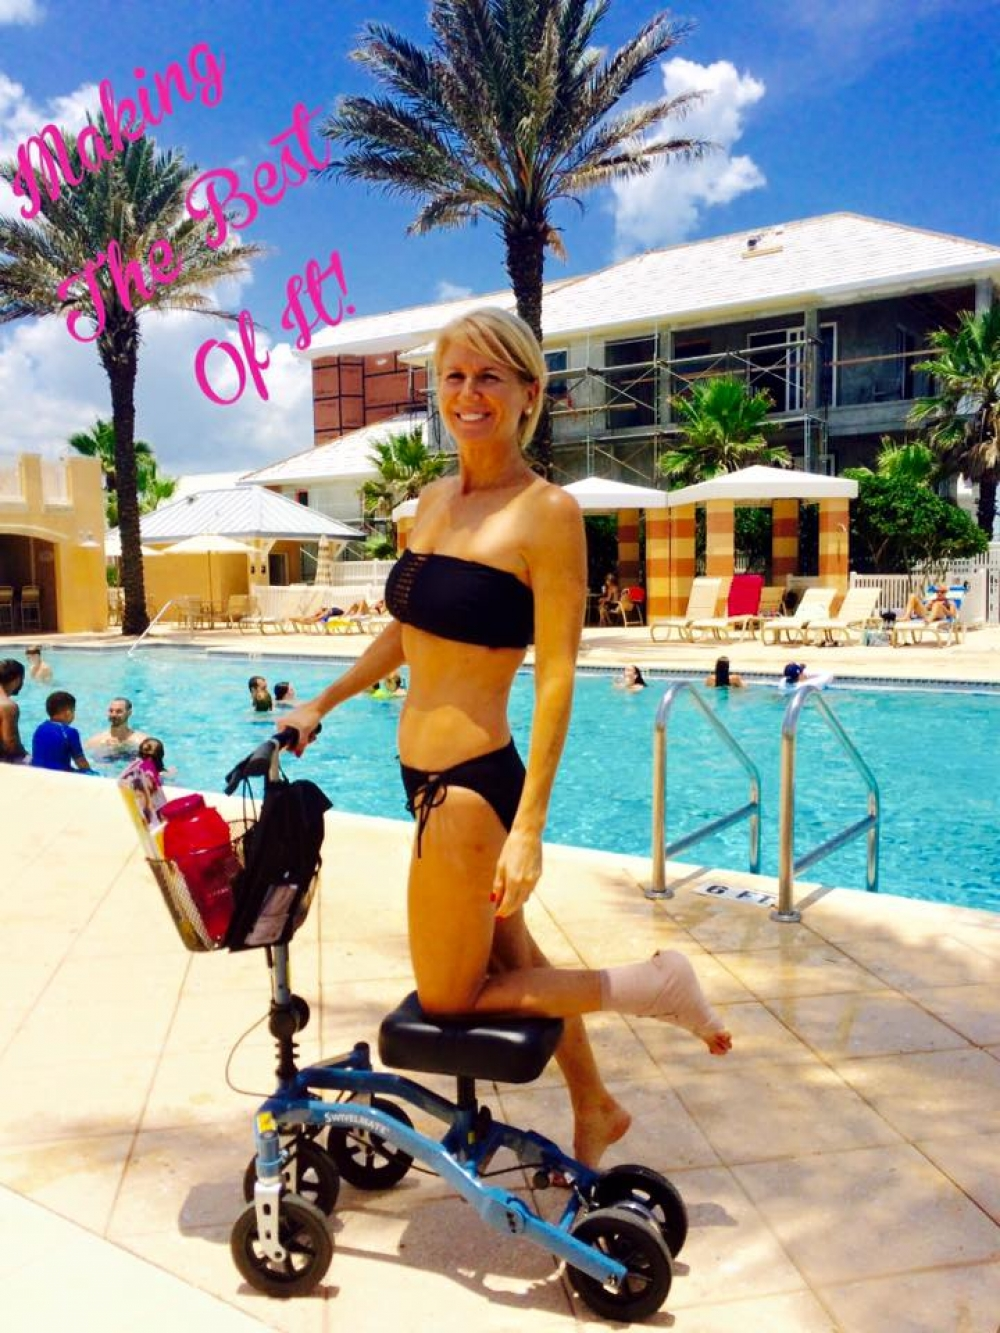 Lisa on the Swivelmate Knee Walker from Orlando Florida July 2015